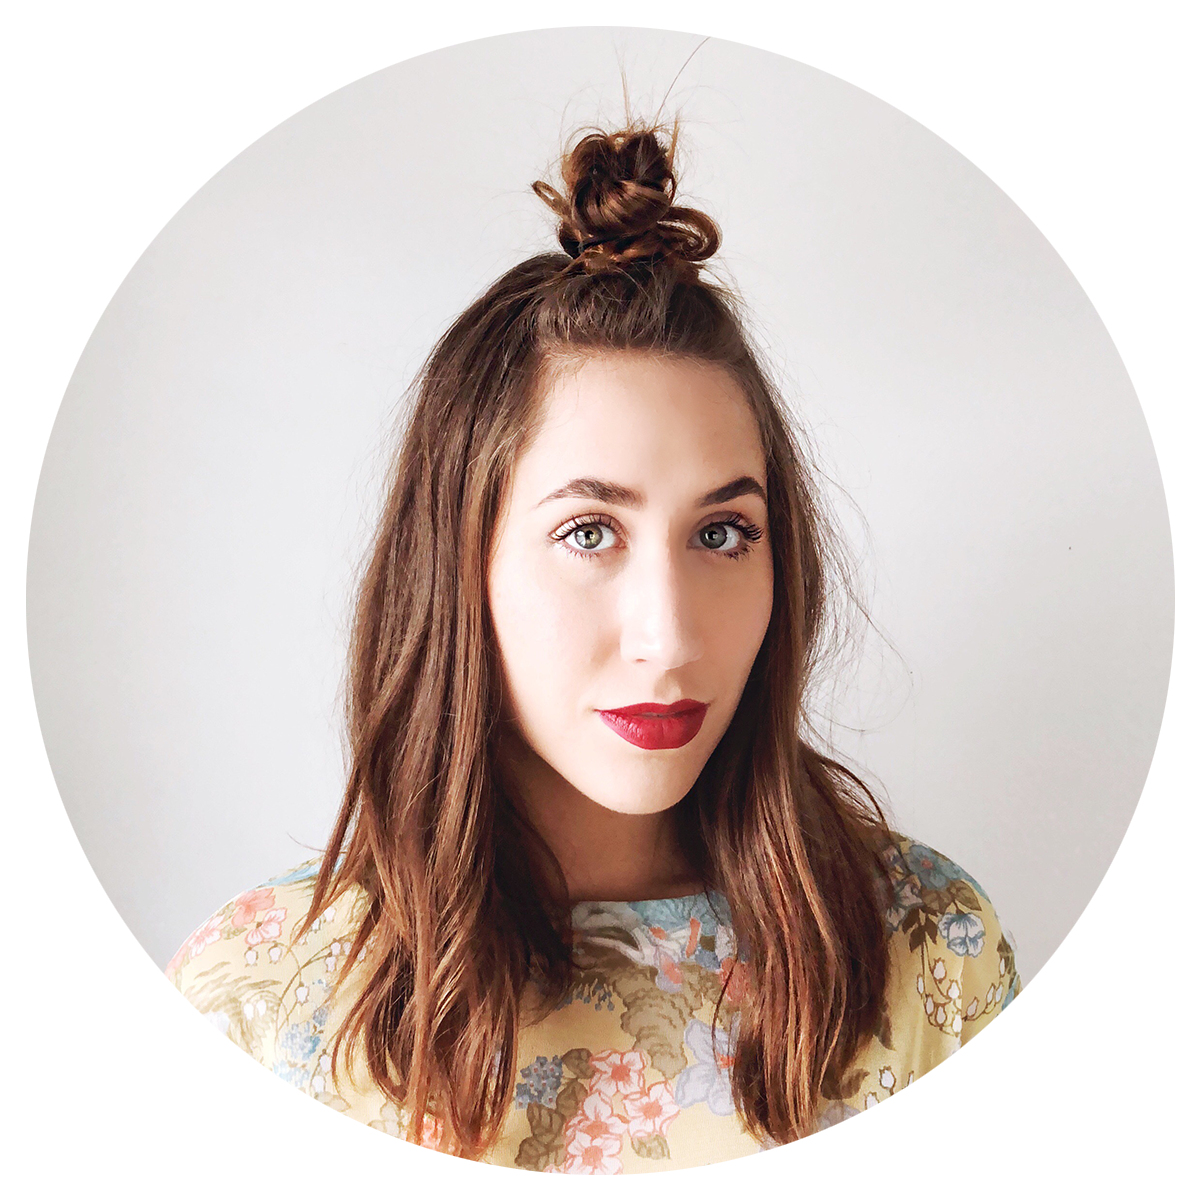 alyssa leigh cates - lateleigh with lee - profile picture.png